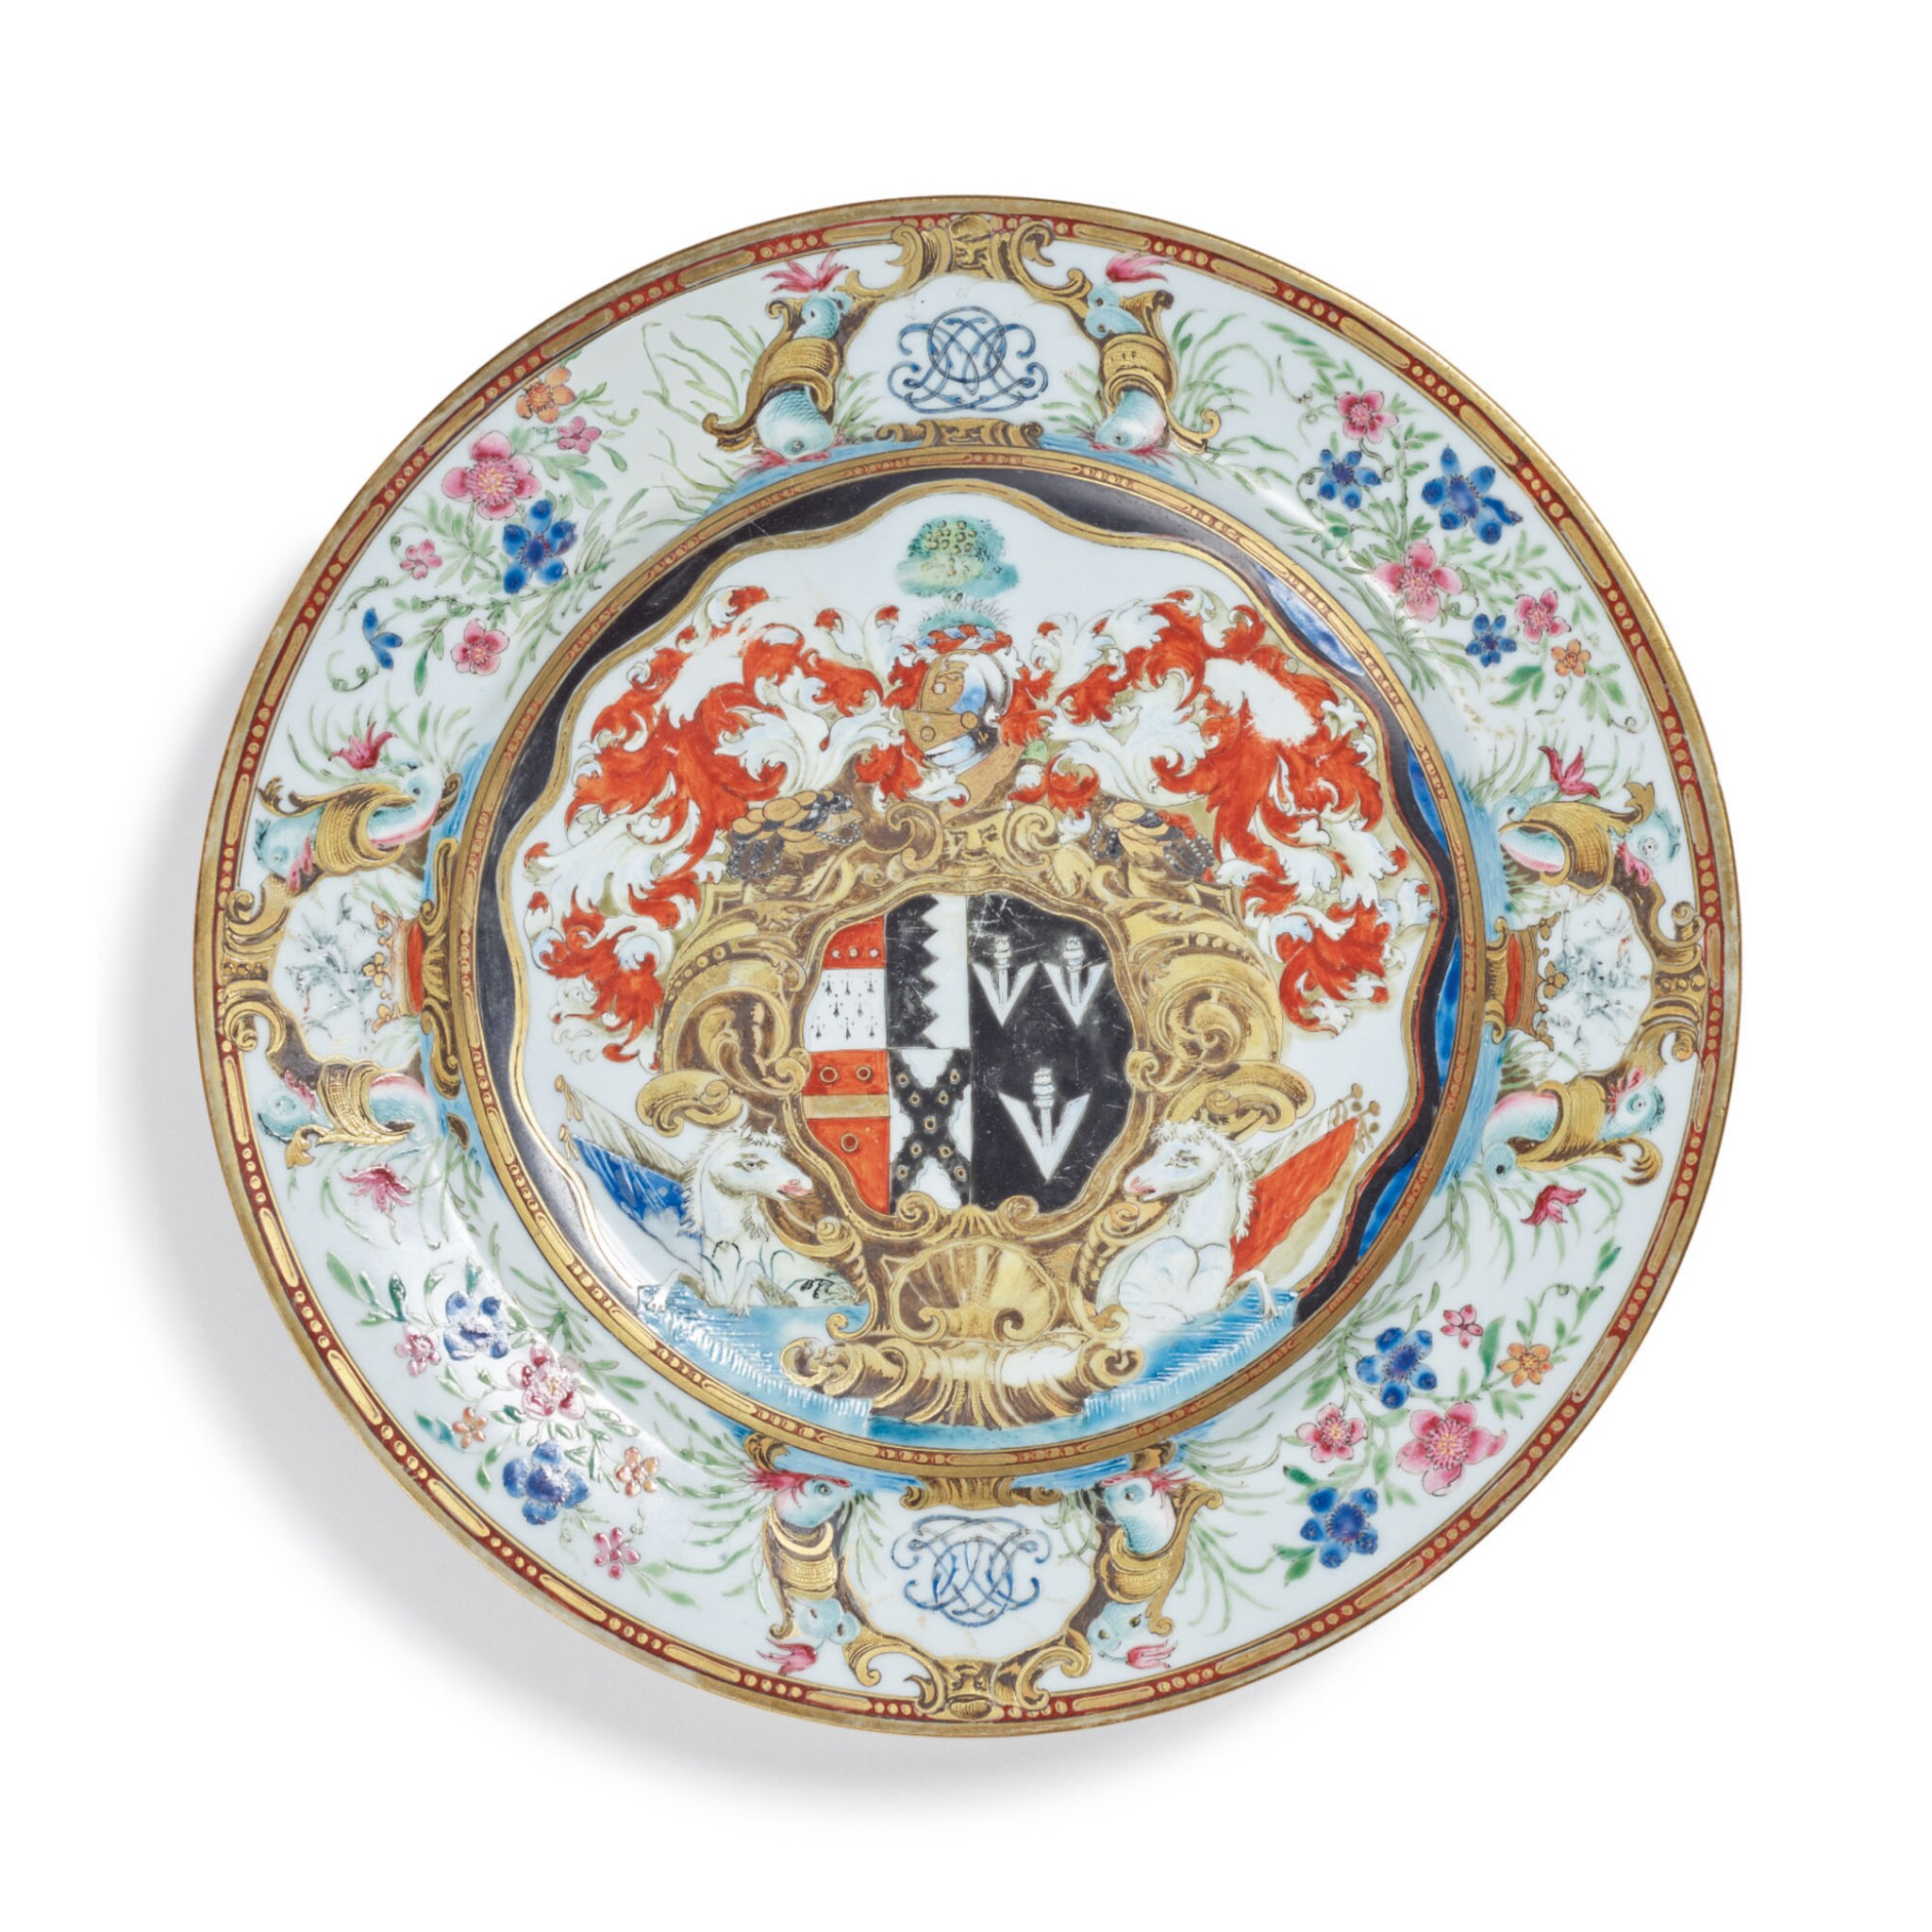 View full screen - View 1 of Lot 1880. A CHINESE EXPORT ARMORIAL PLATE, QING DYNASTY, QIANLONG PERIOD, CIRCA 1743   清乾隆 約1743年 粉彩紋章圖盤.